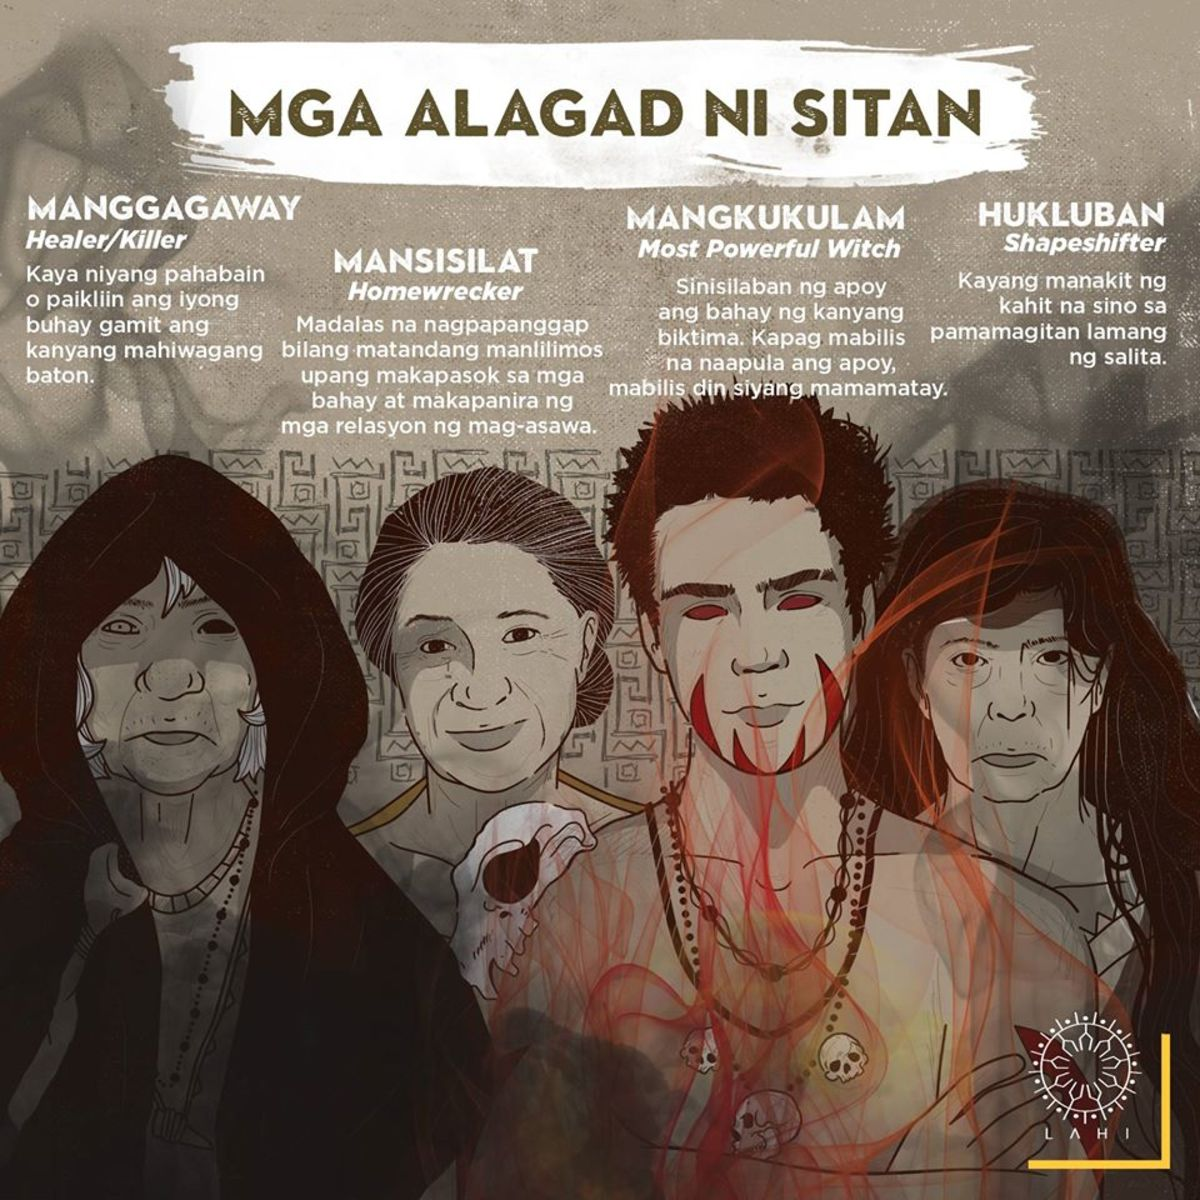 The four agents of Sitan.